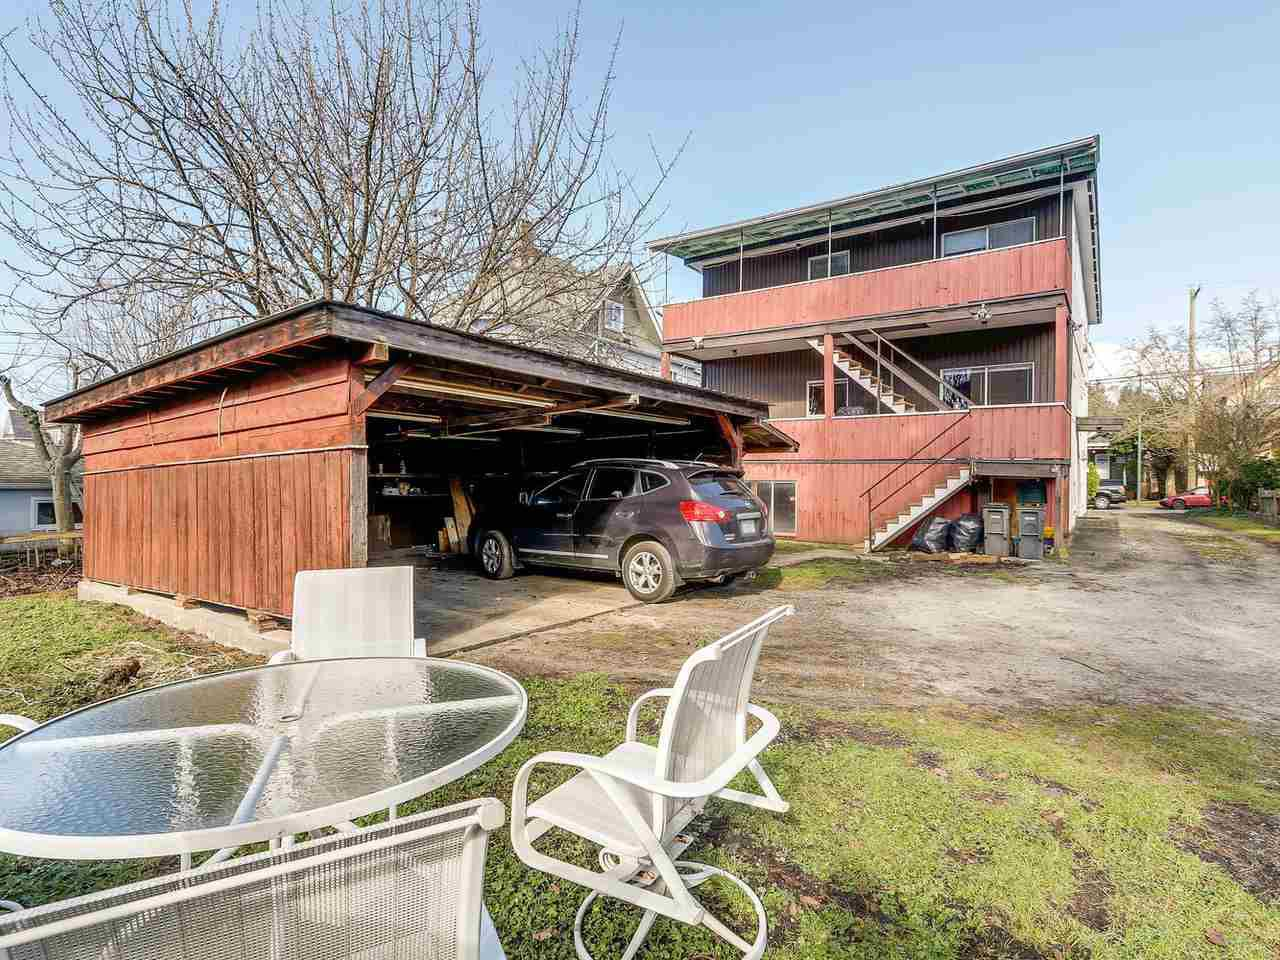 Main Photo: 2482 W 7TH AVENUE in Vancouver: Kitsilano House for sale (Vancouver West)  : MLS®# R2209690